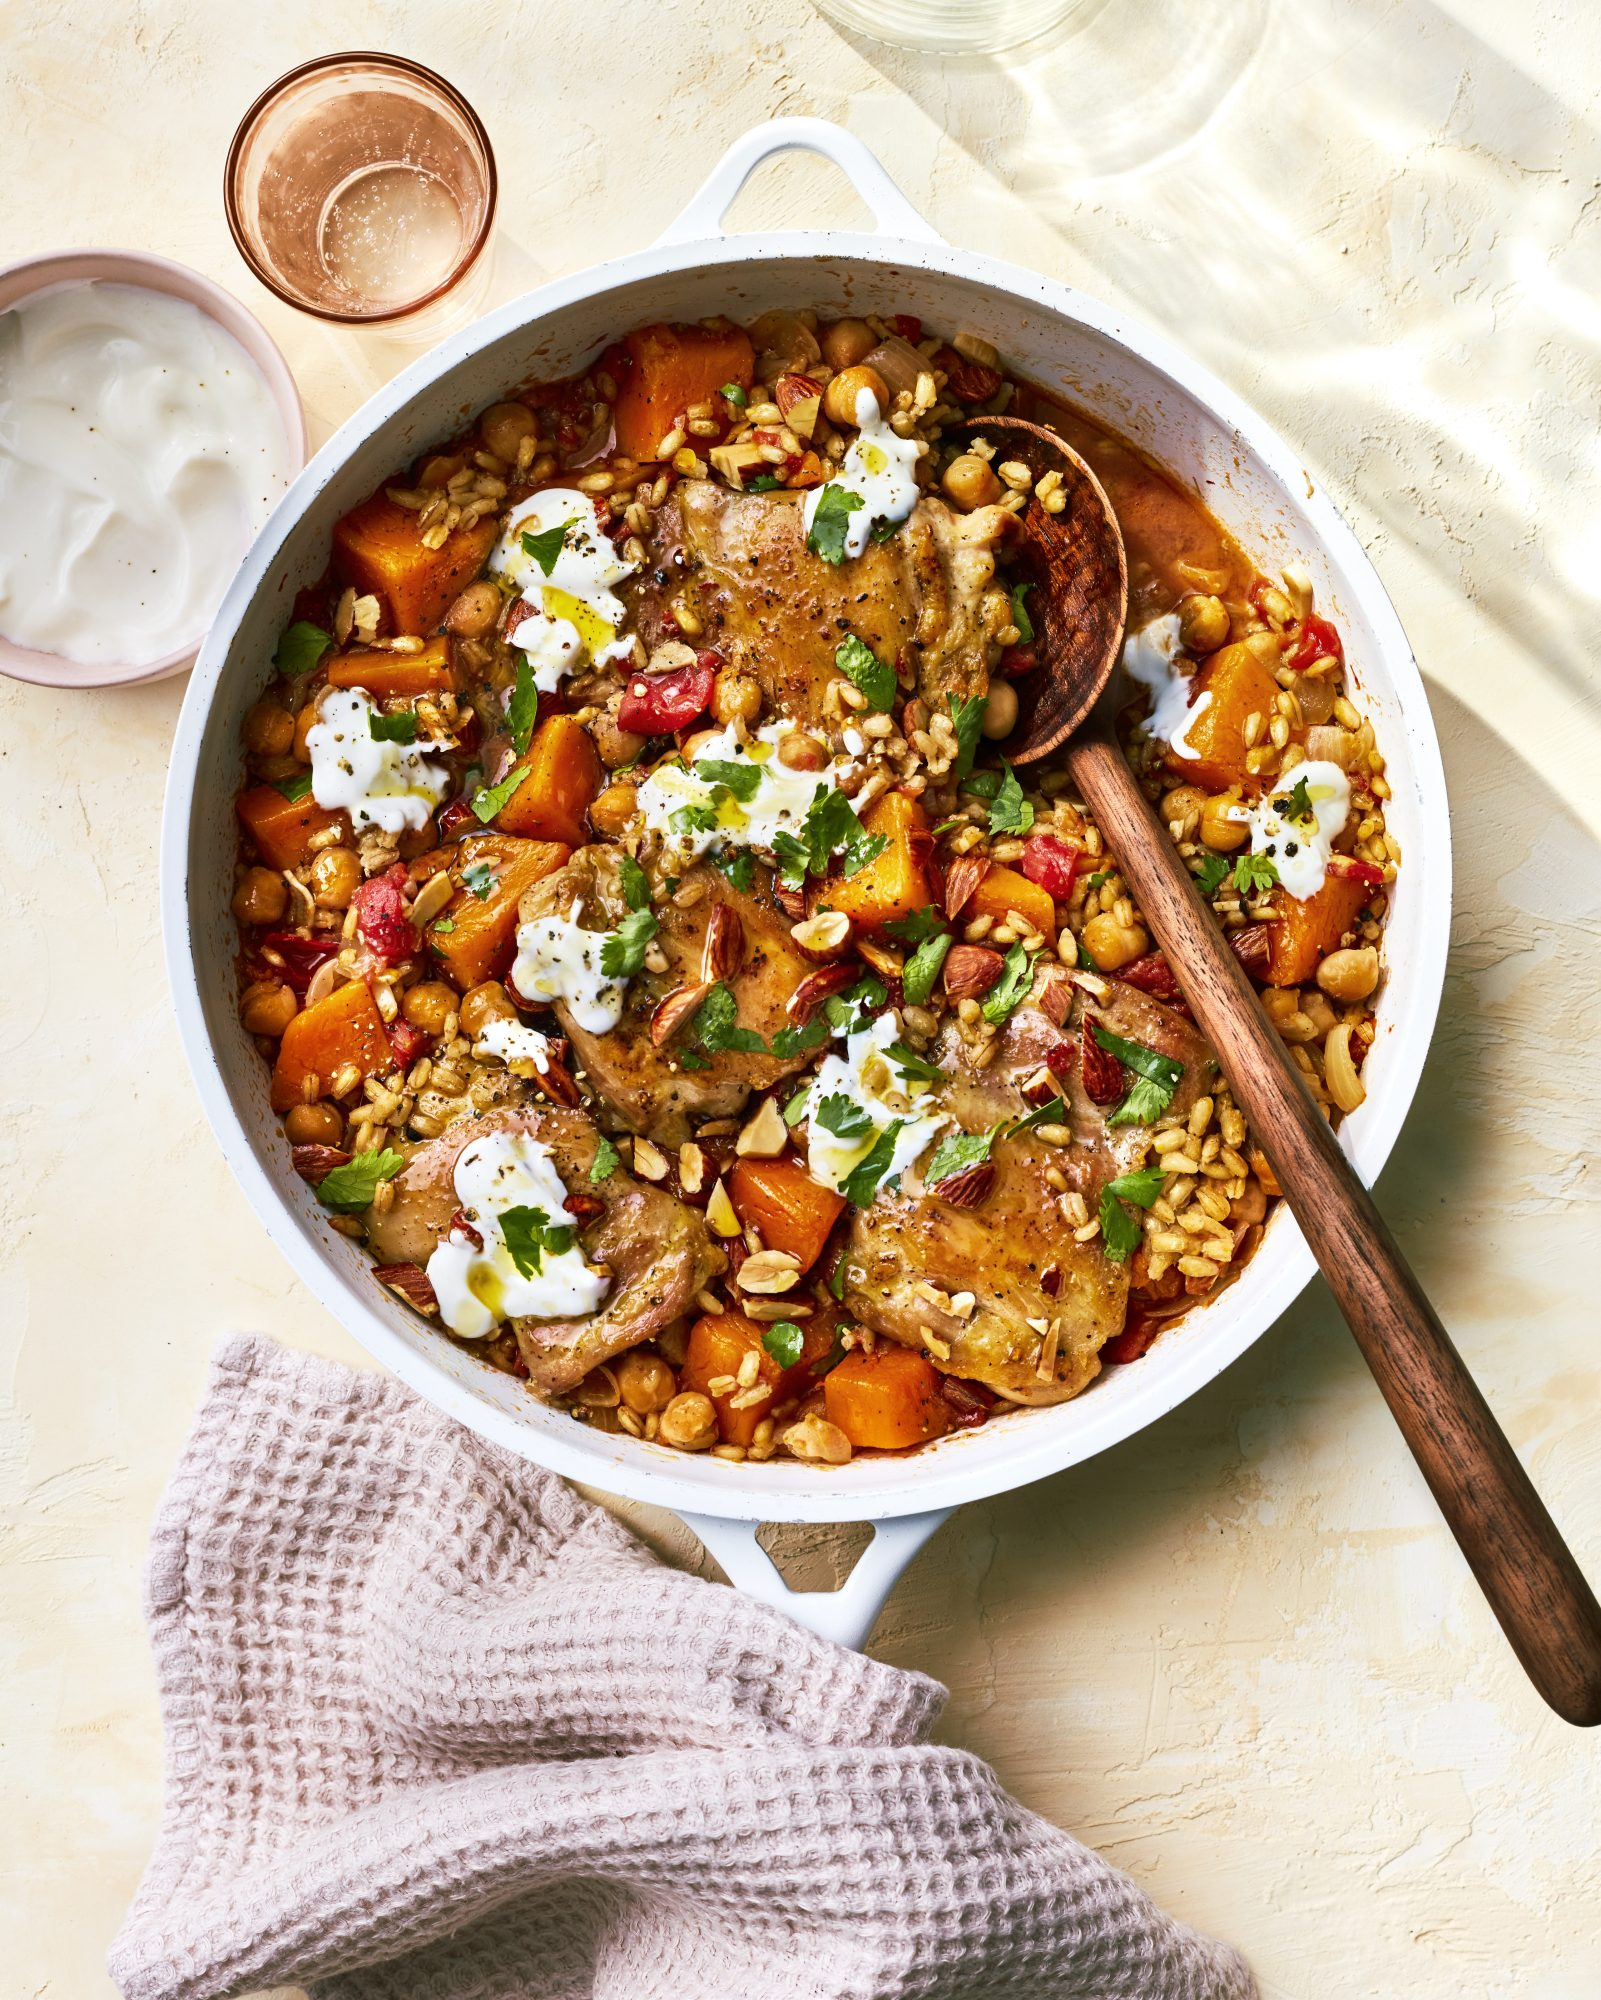 Chicken, Butternut Squash, and Barley Skillet Dinner